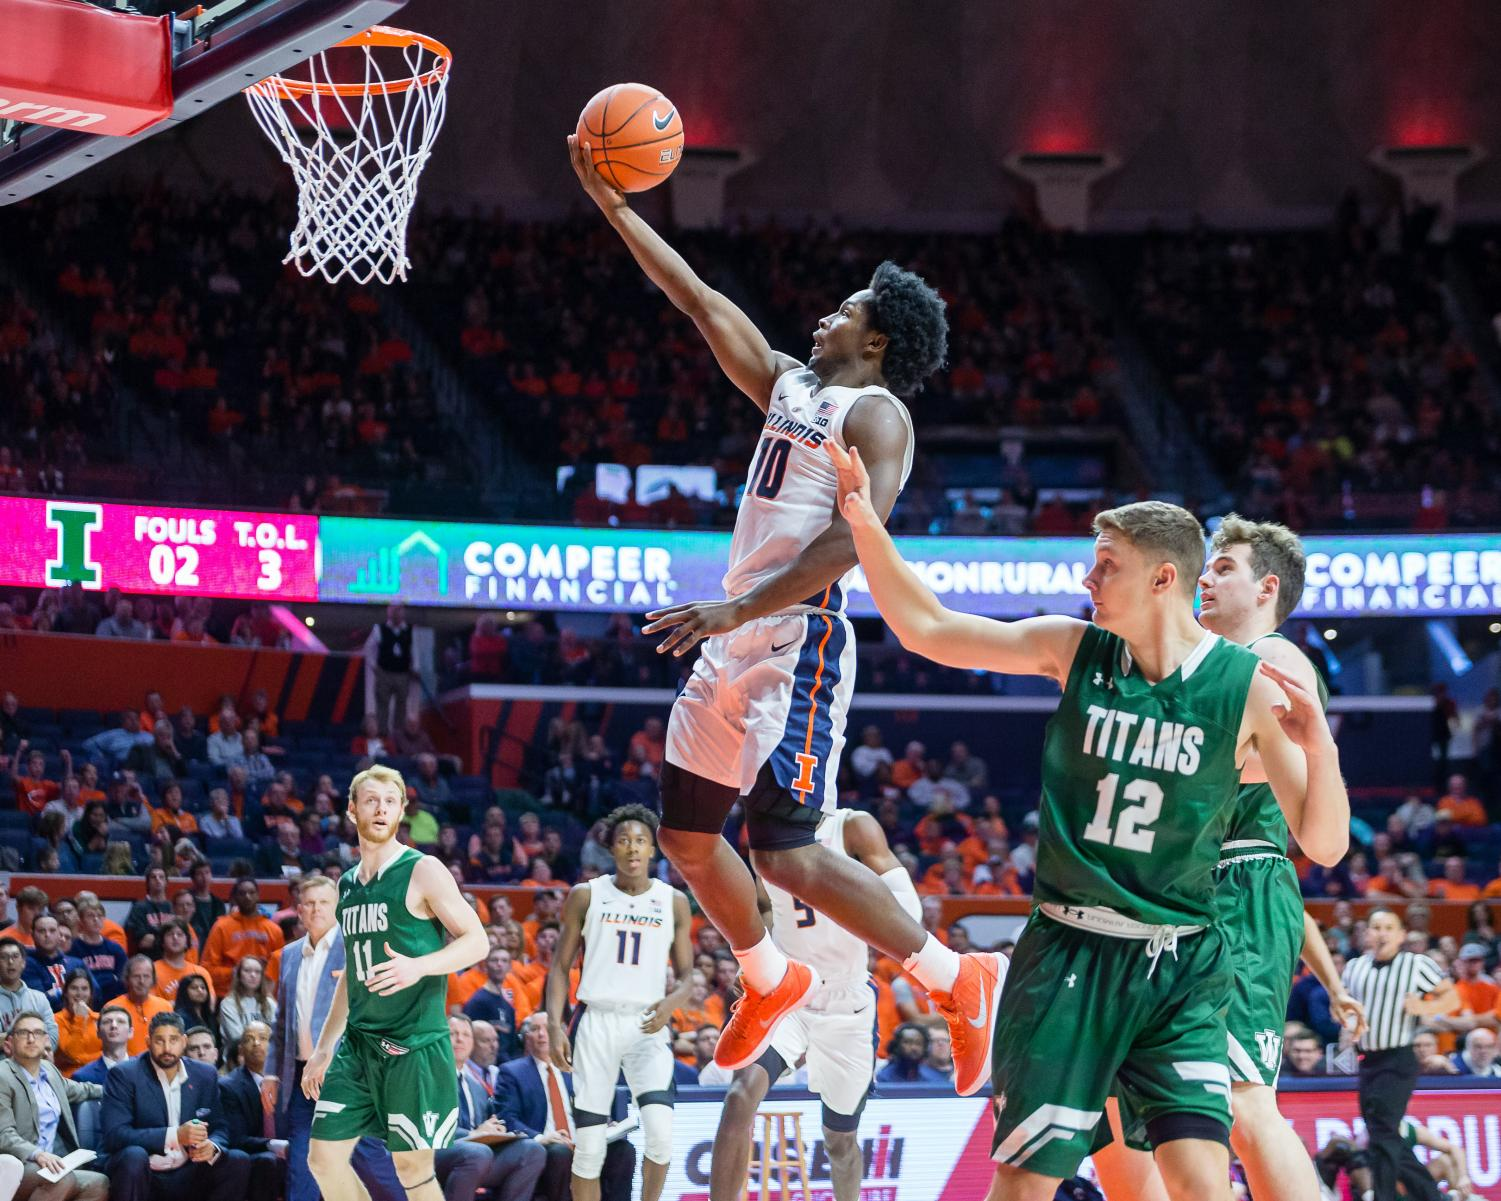 Illinois guard Andres Feliz goes up for a layup during the exhibition game against Illinois Wesleyan at State Farm Center on Friday. The Illini won 83-67.